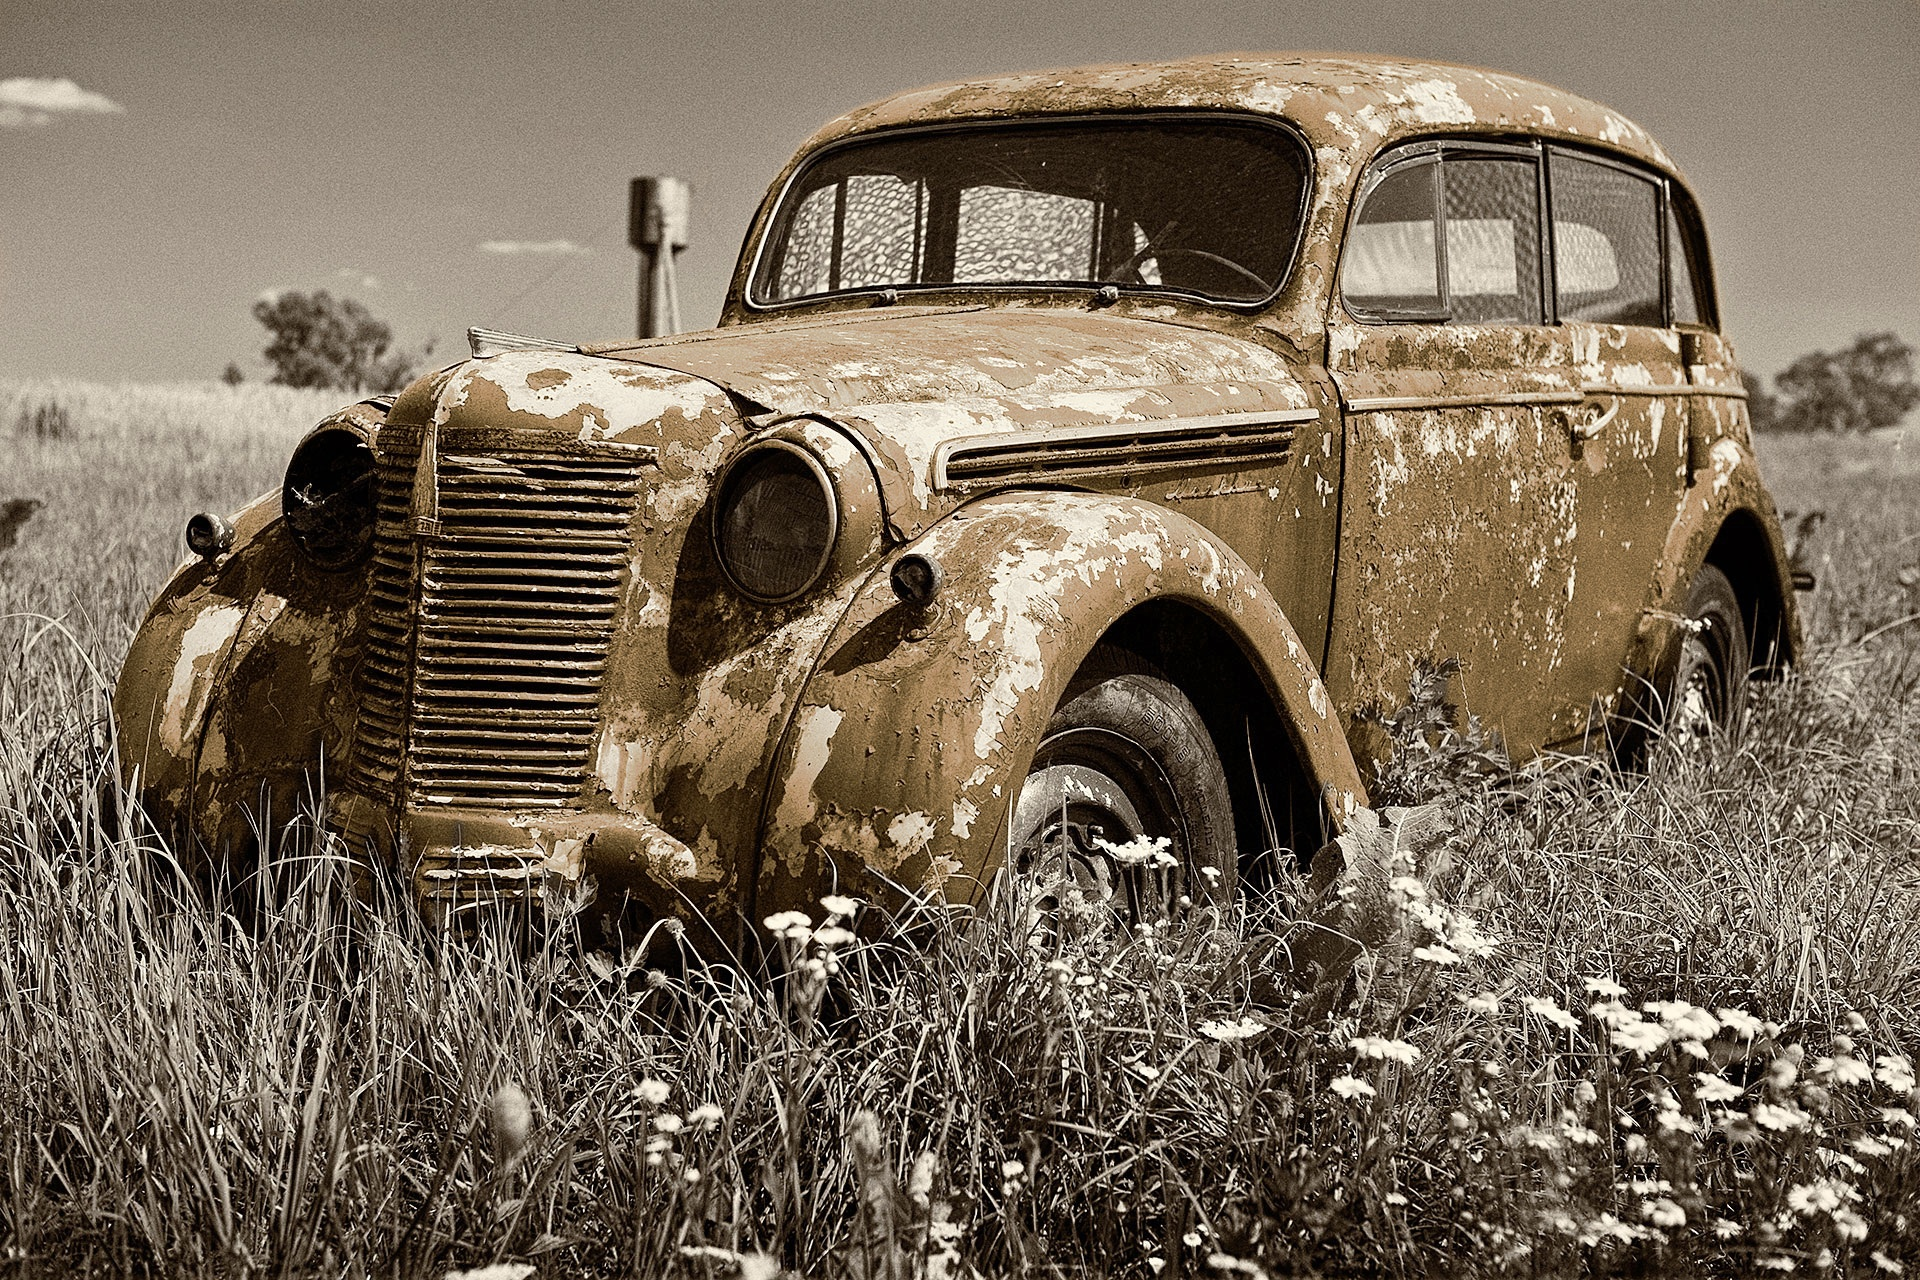 Vintage Fotos Car Vintage Old Rusty Free Stock Photo - Public Domain Pictures